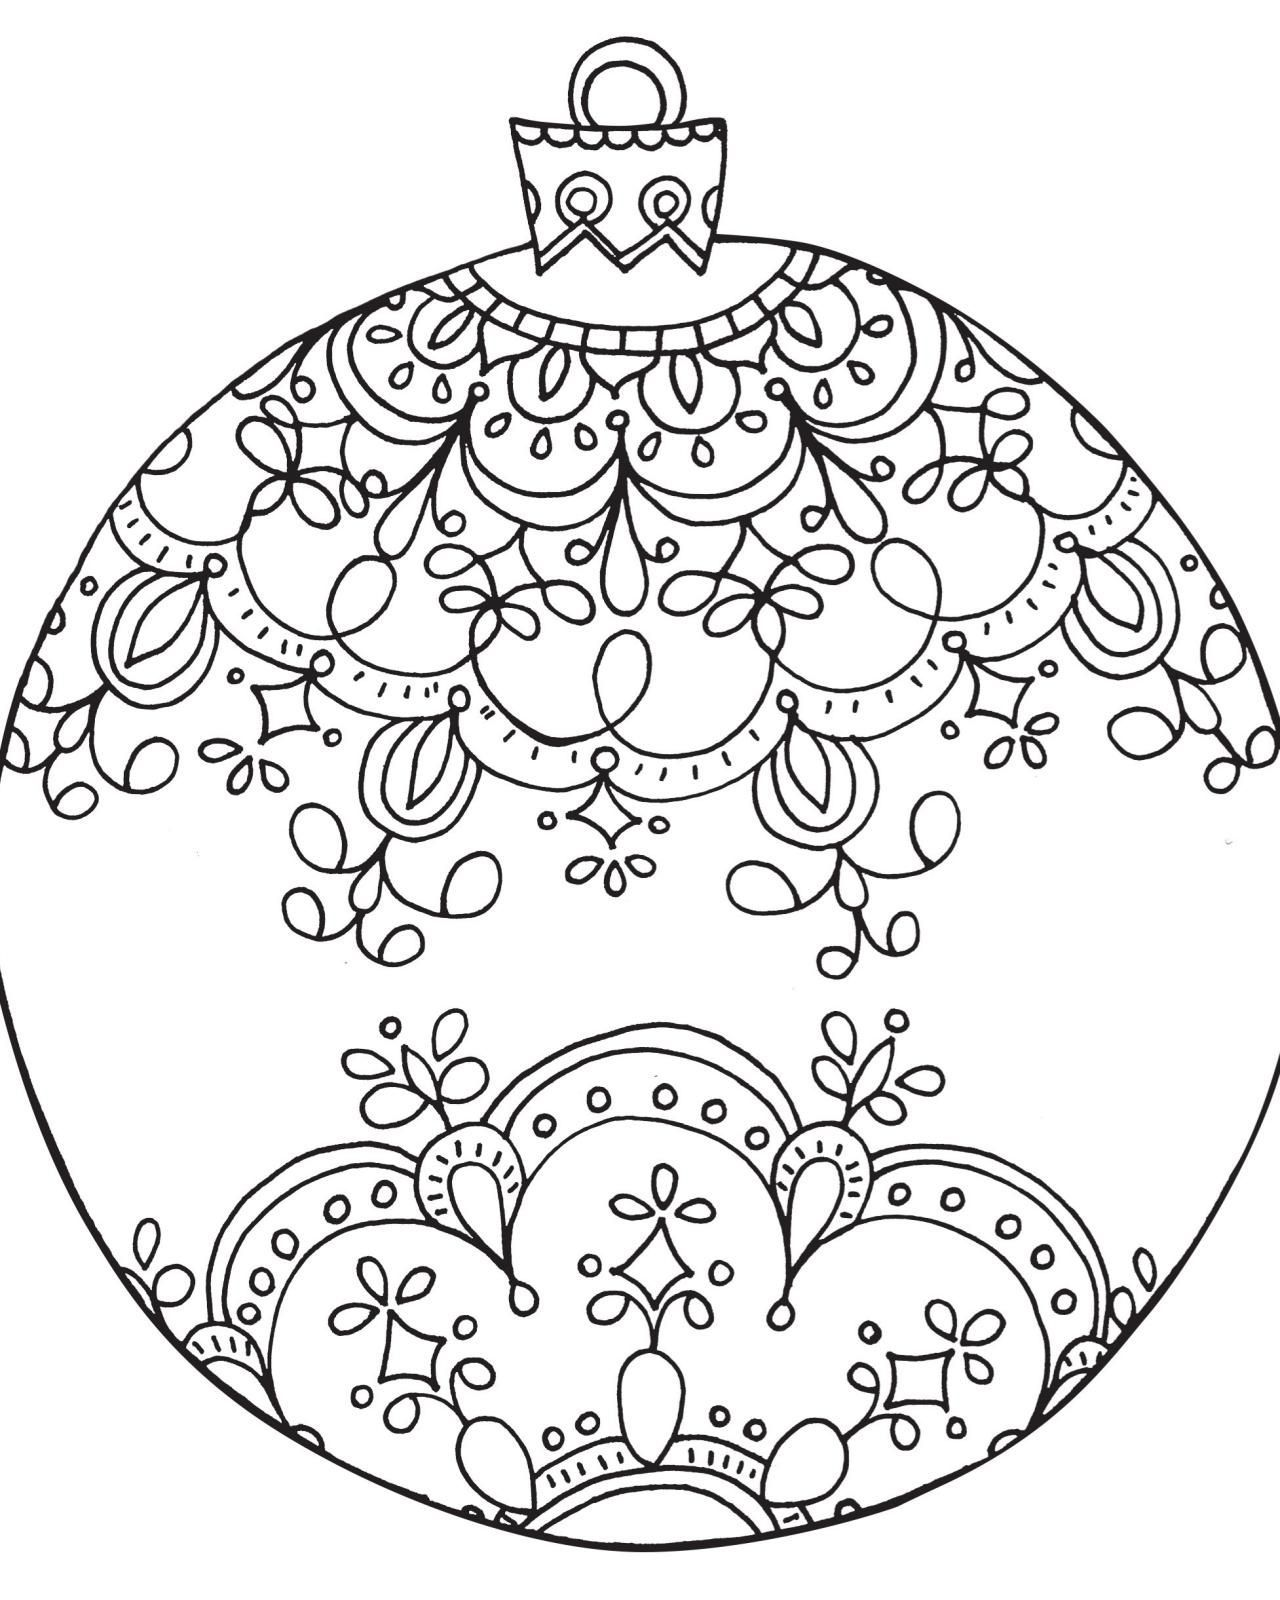 Free Adult Christmas Coloring Pages Free Printable Coloring Pages